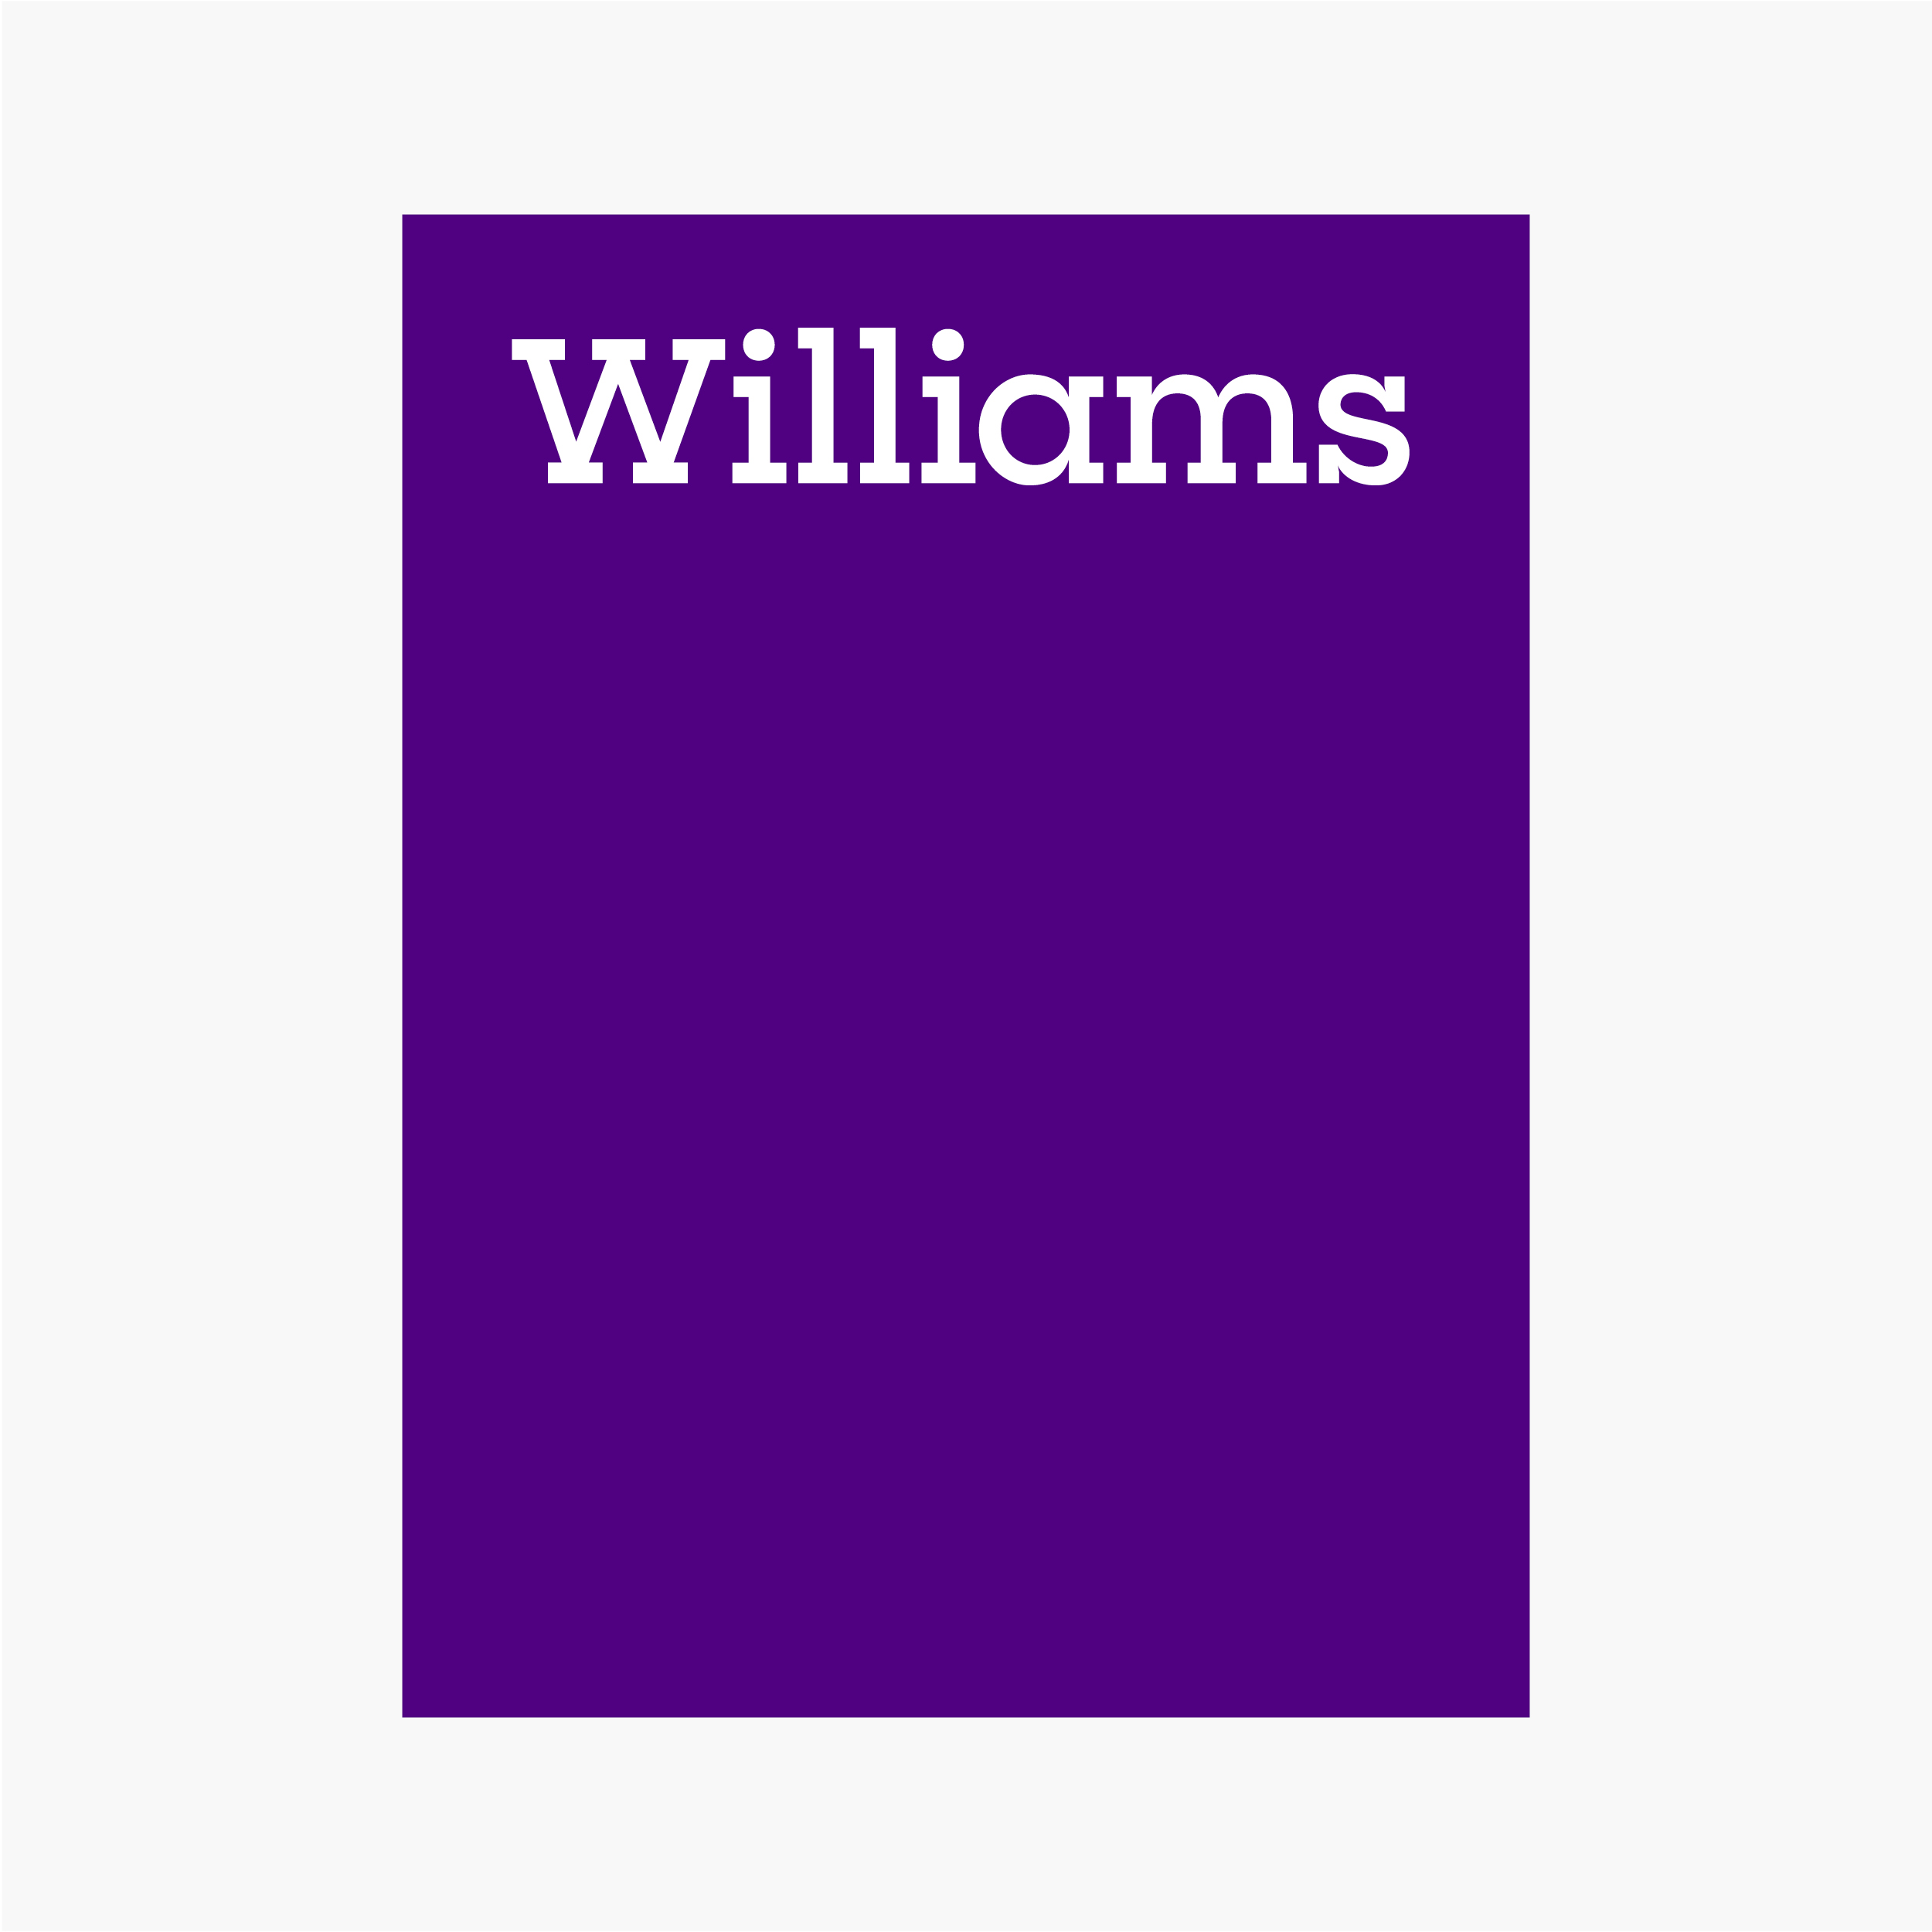 williams_guidelines_square2